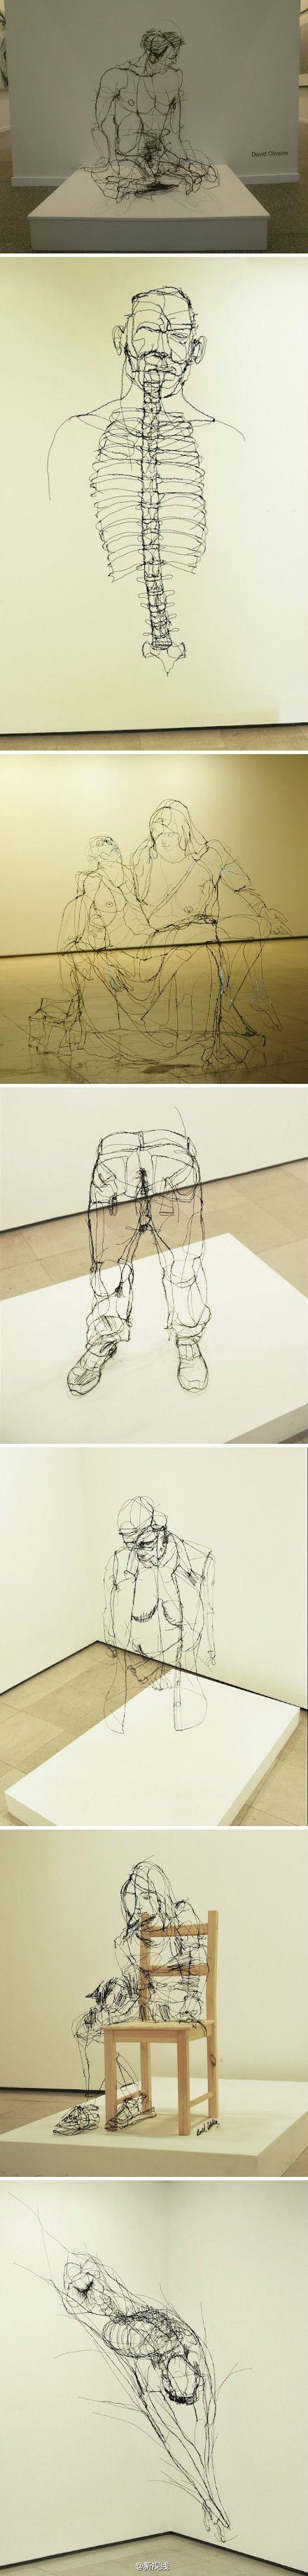 Sculpture from iron strings by David Oliveira So neat! Three Dimensional line drawings.